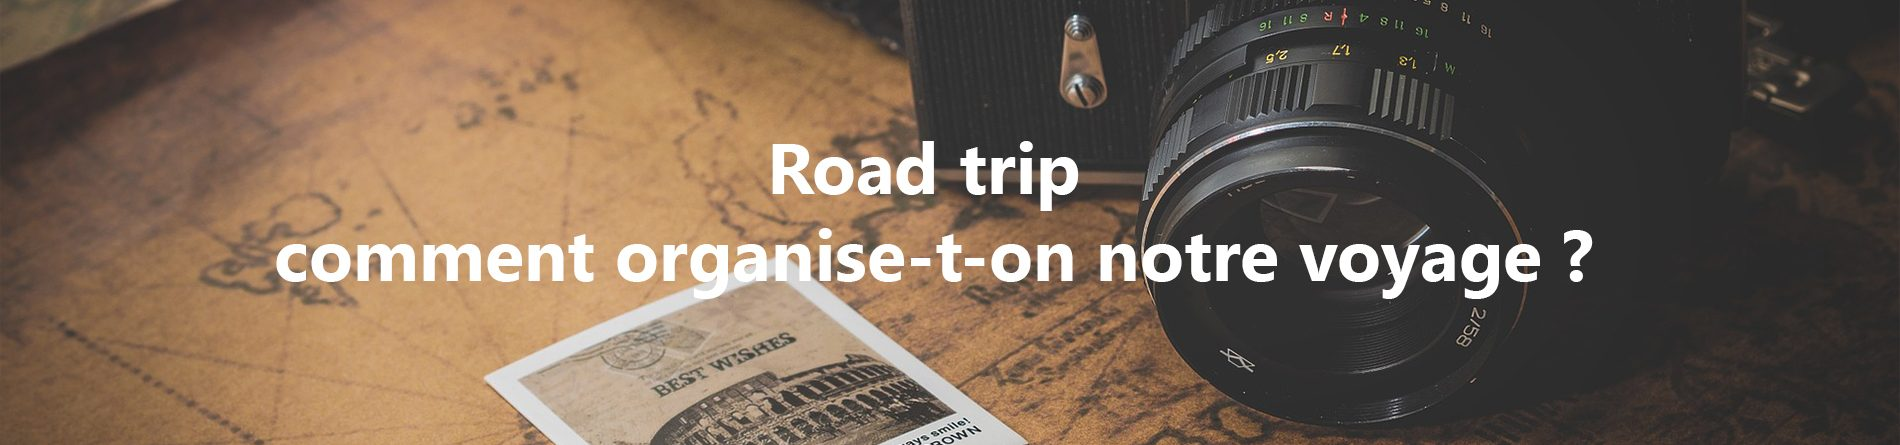 Road trip : comment organise-t-on notre voyage ?